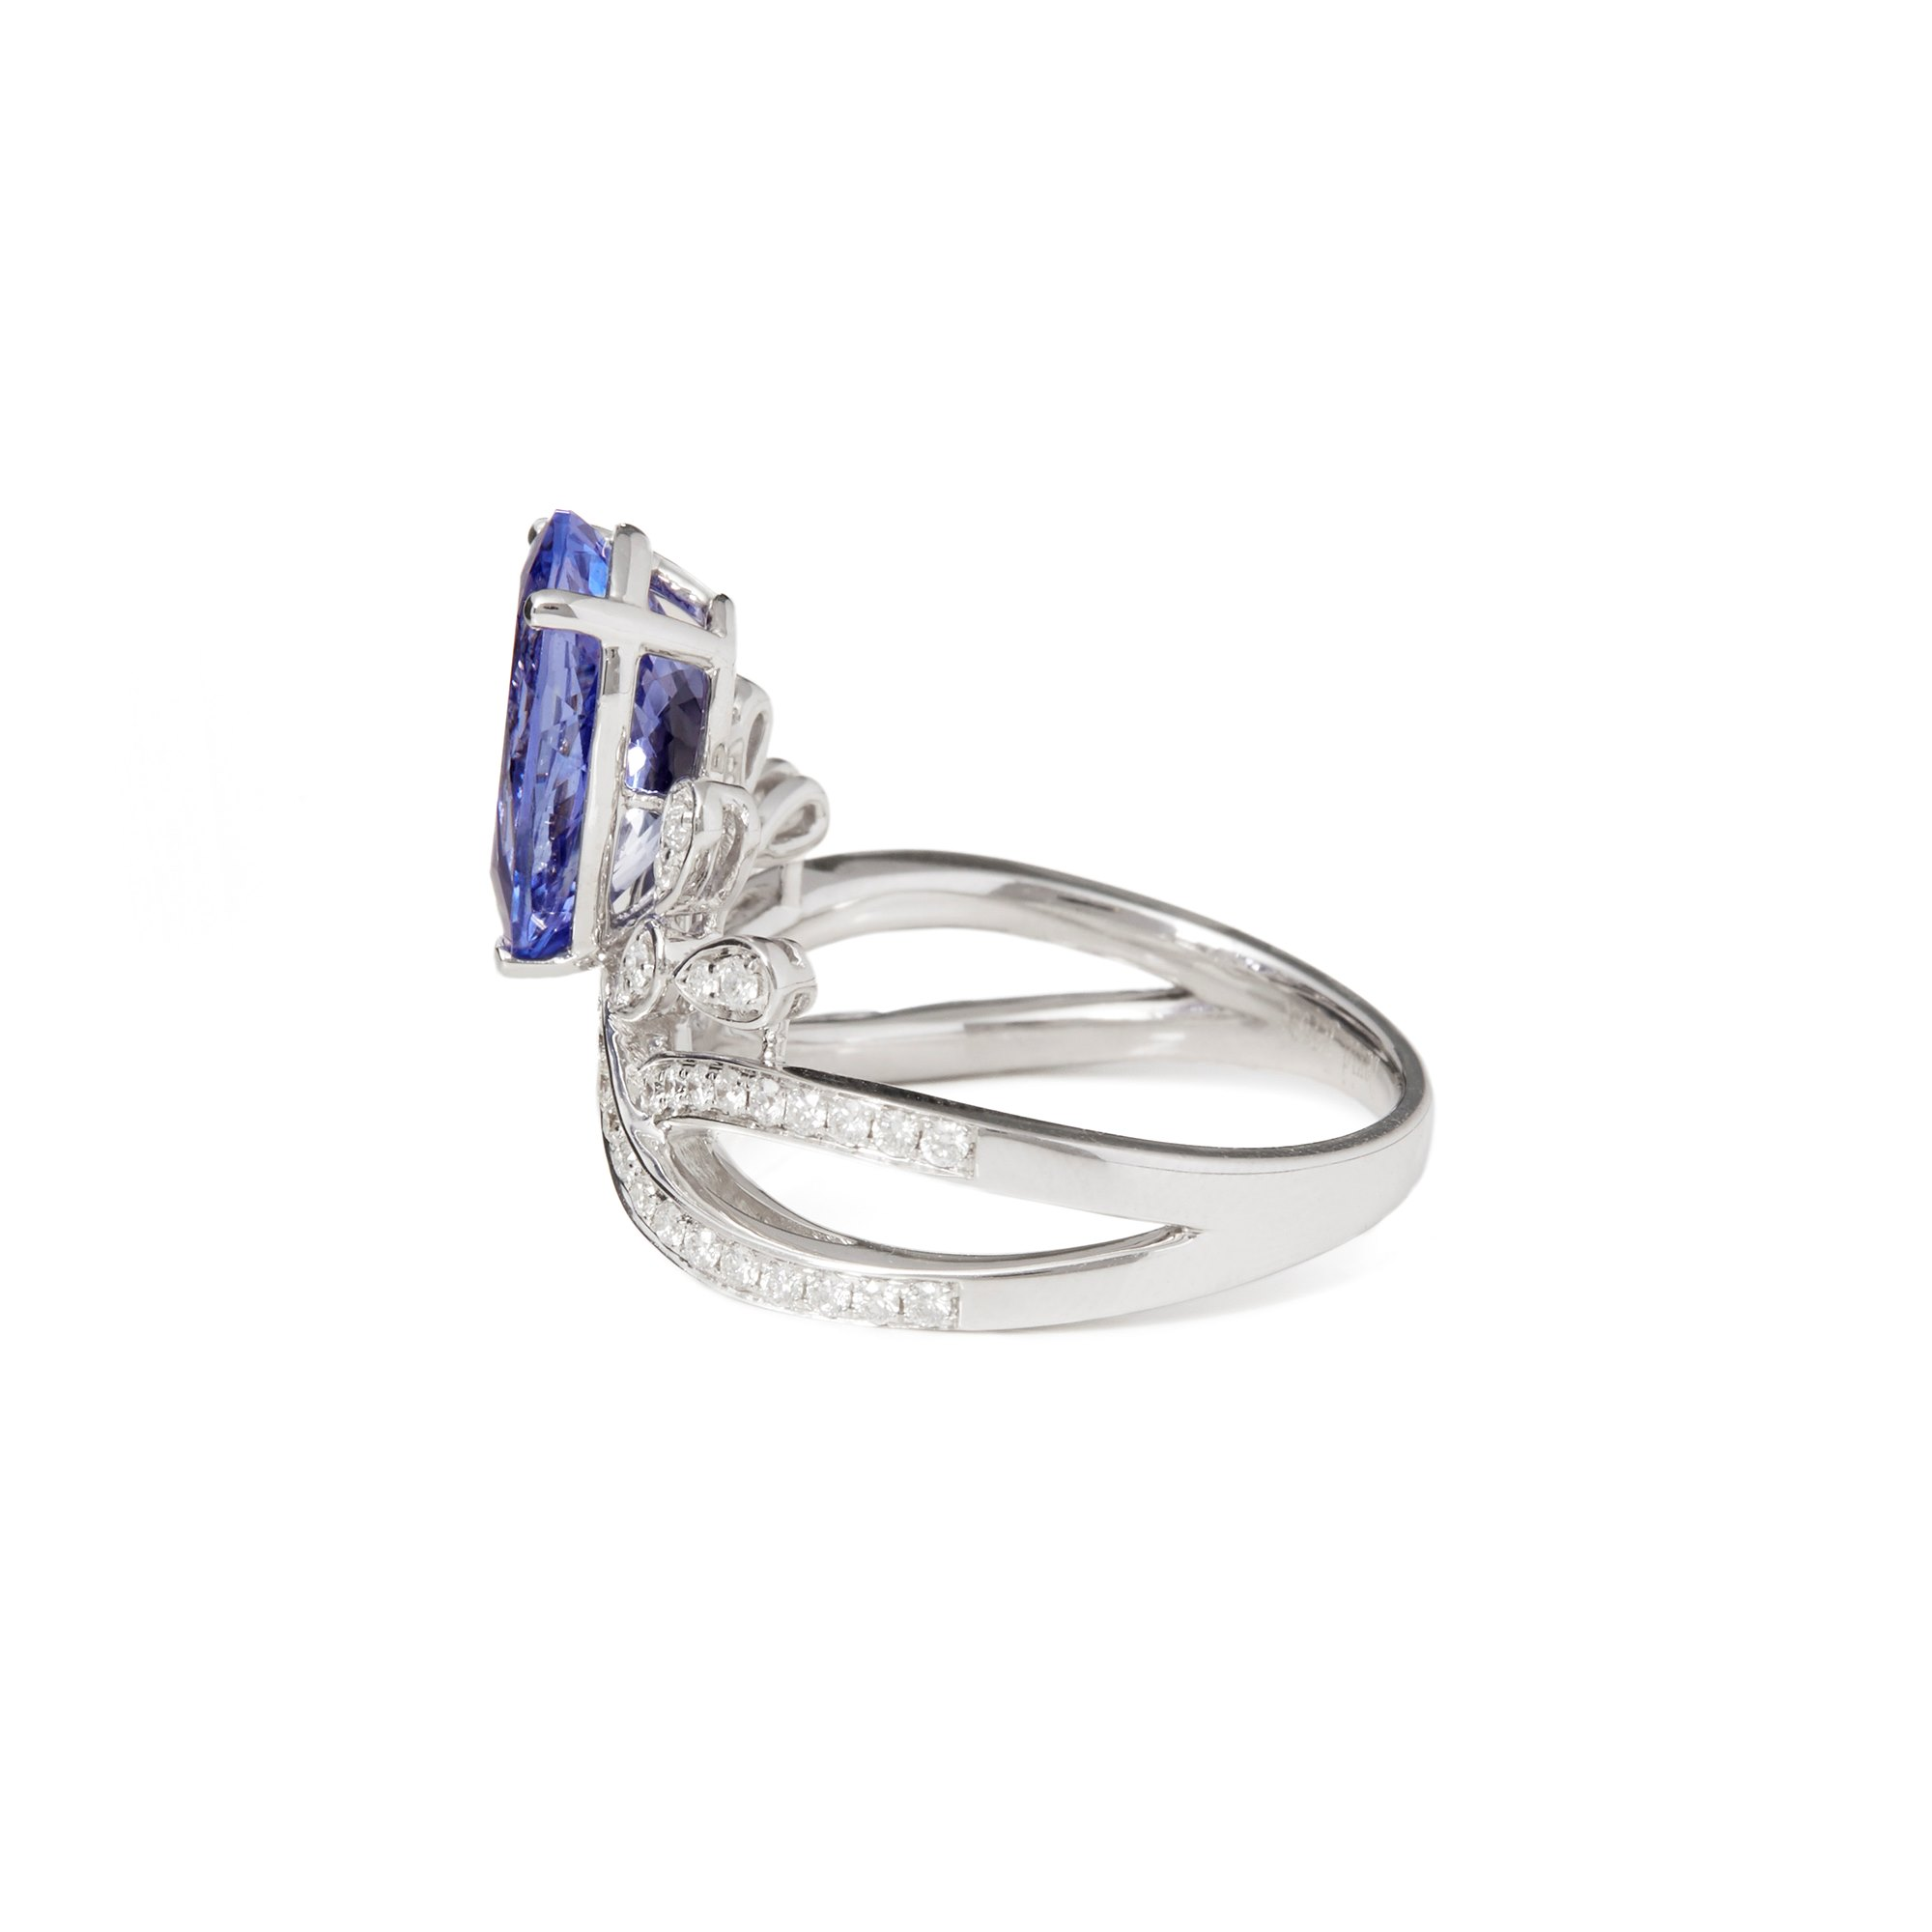 David Jerome Certified 2.7ct Untreated Pear Cut Tanzanite and Diamond 18ct Gold Ring